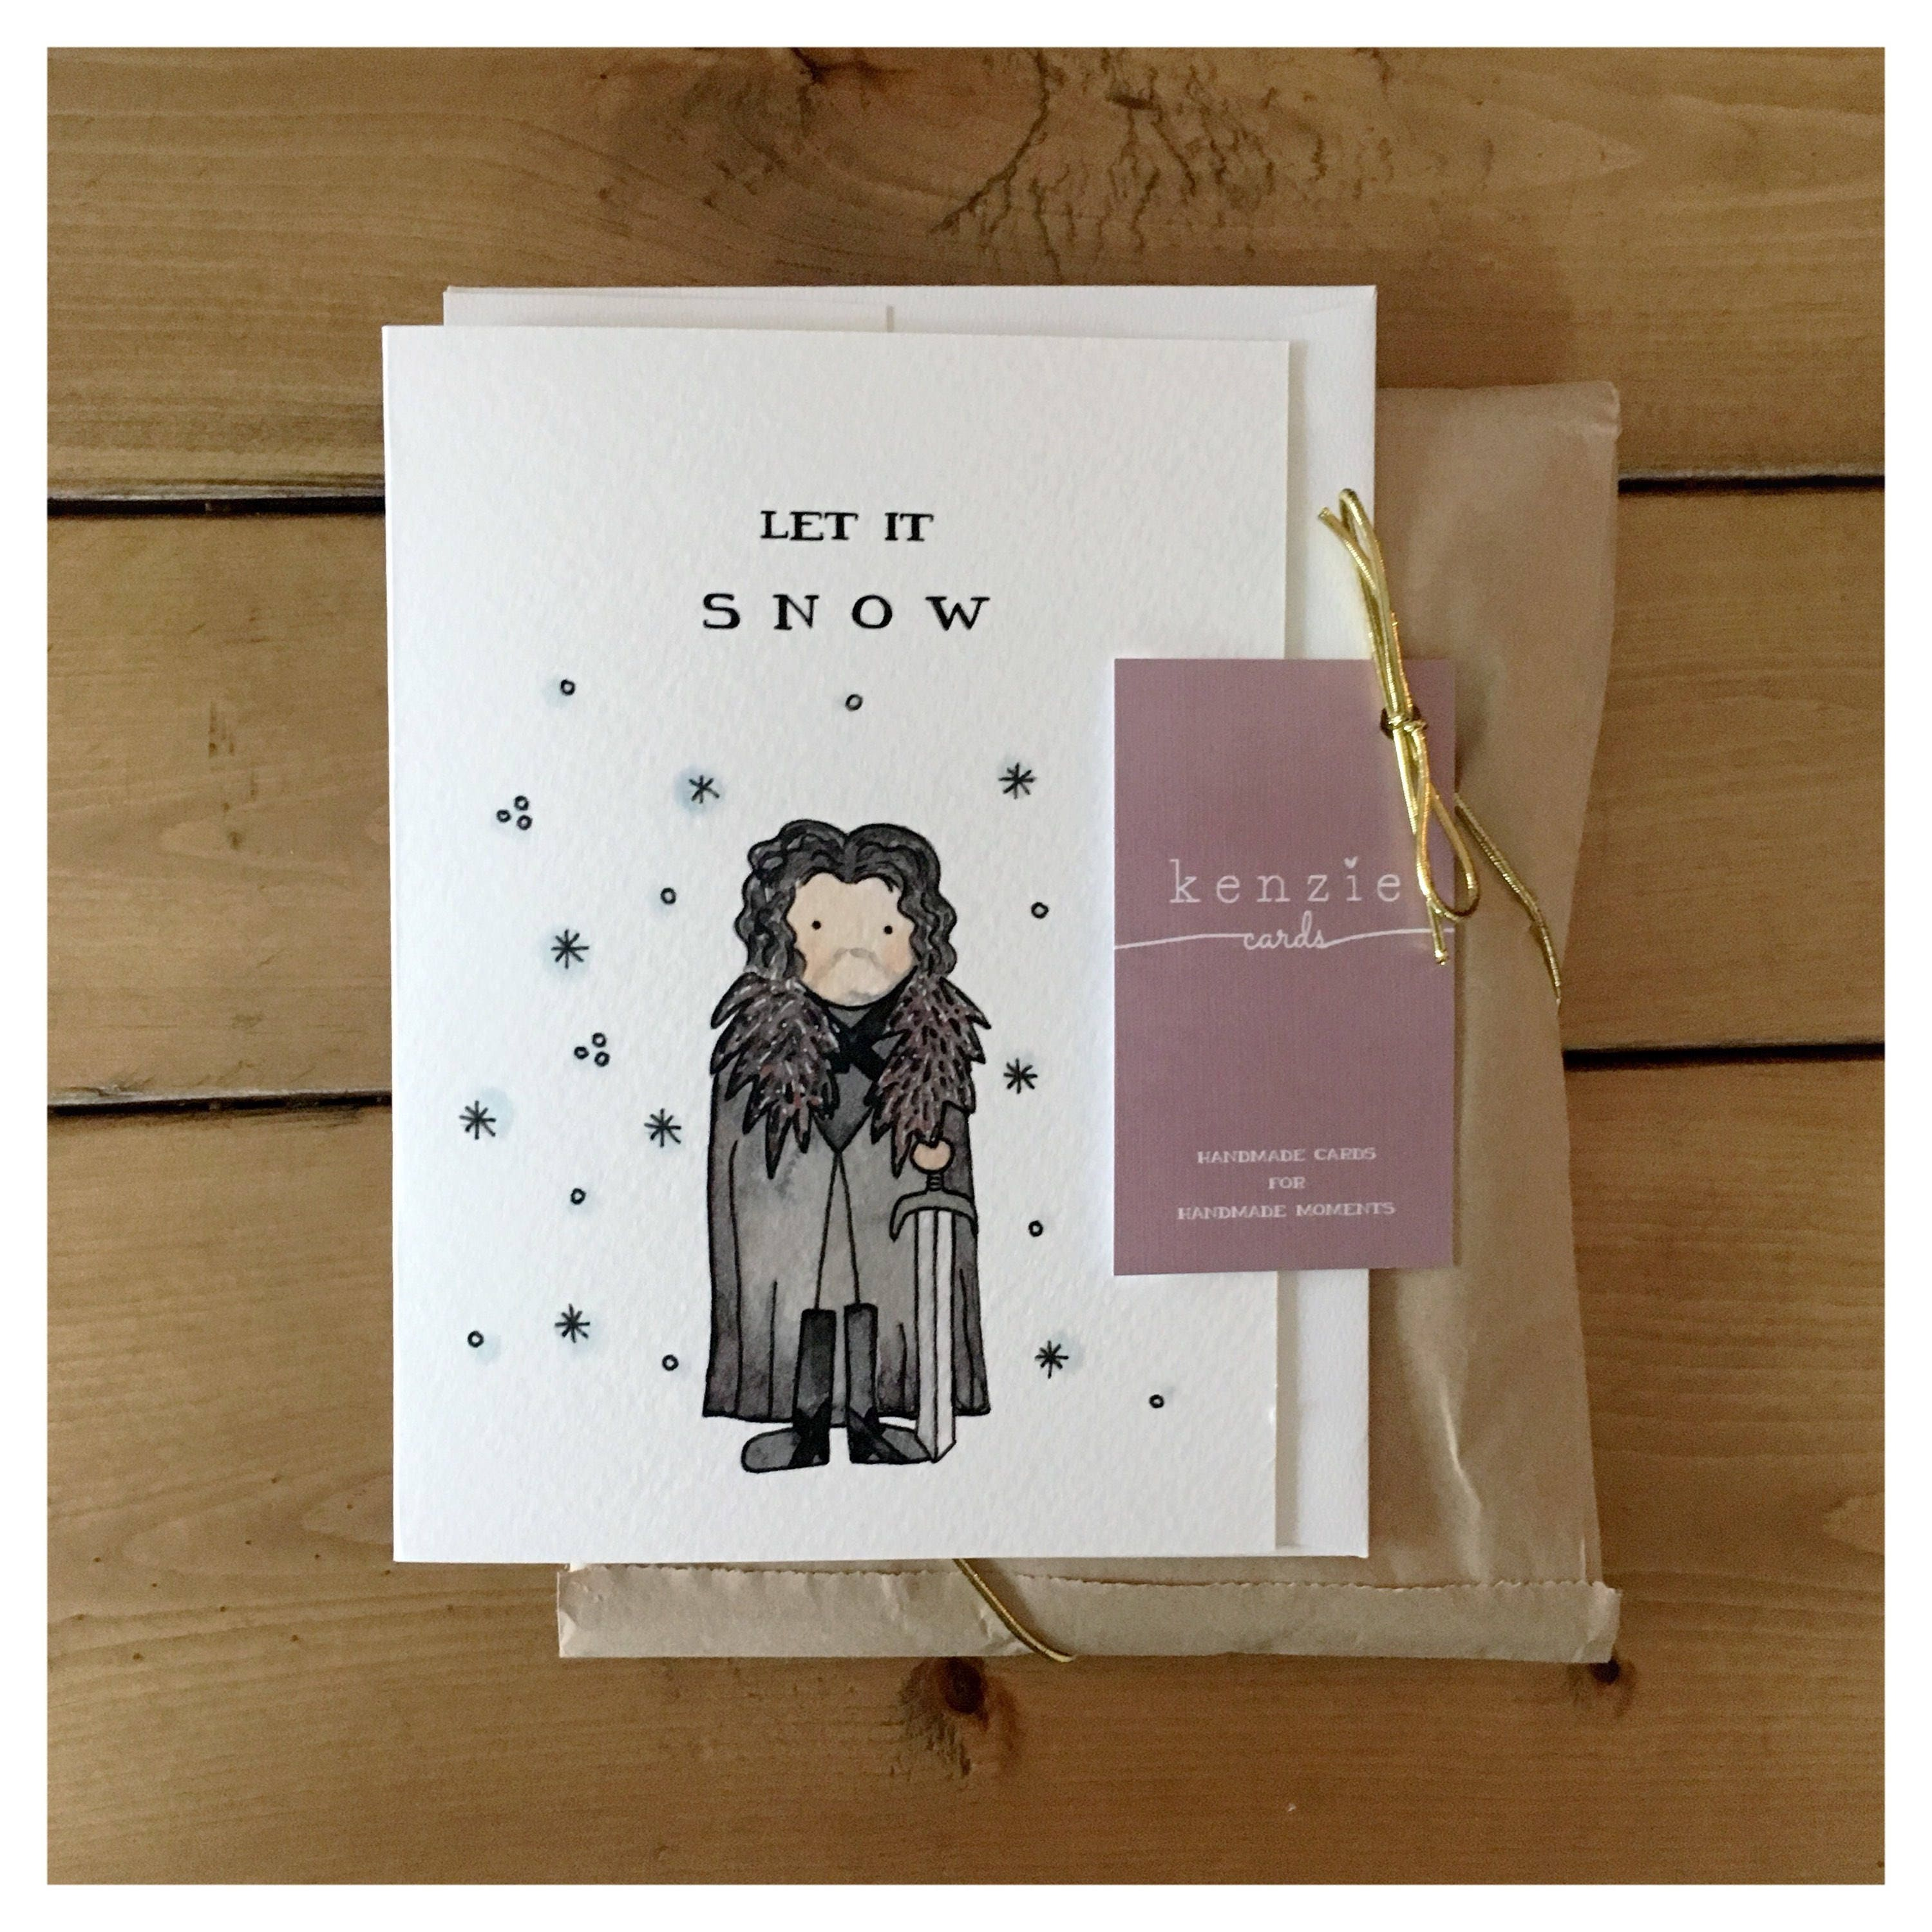 Let it snow jon snow game of thrones pun funny card christmas let it snow jon snow game of thrones pun funny card christmas card greeting card fandom pop culture holiday card punny got m4hsunfo